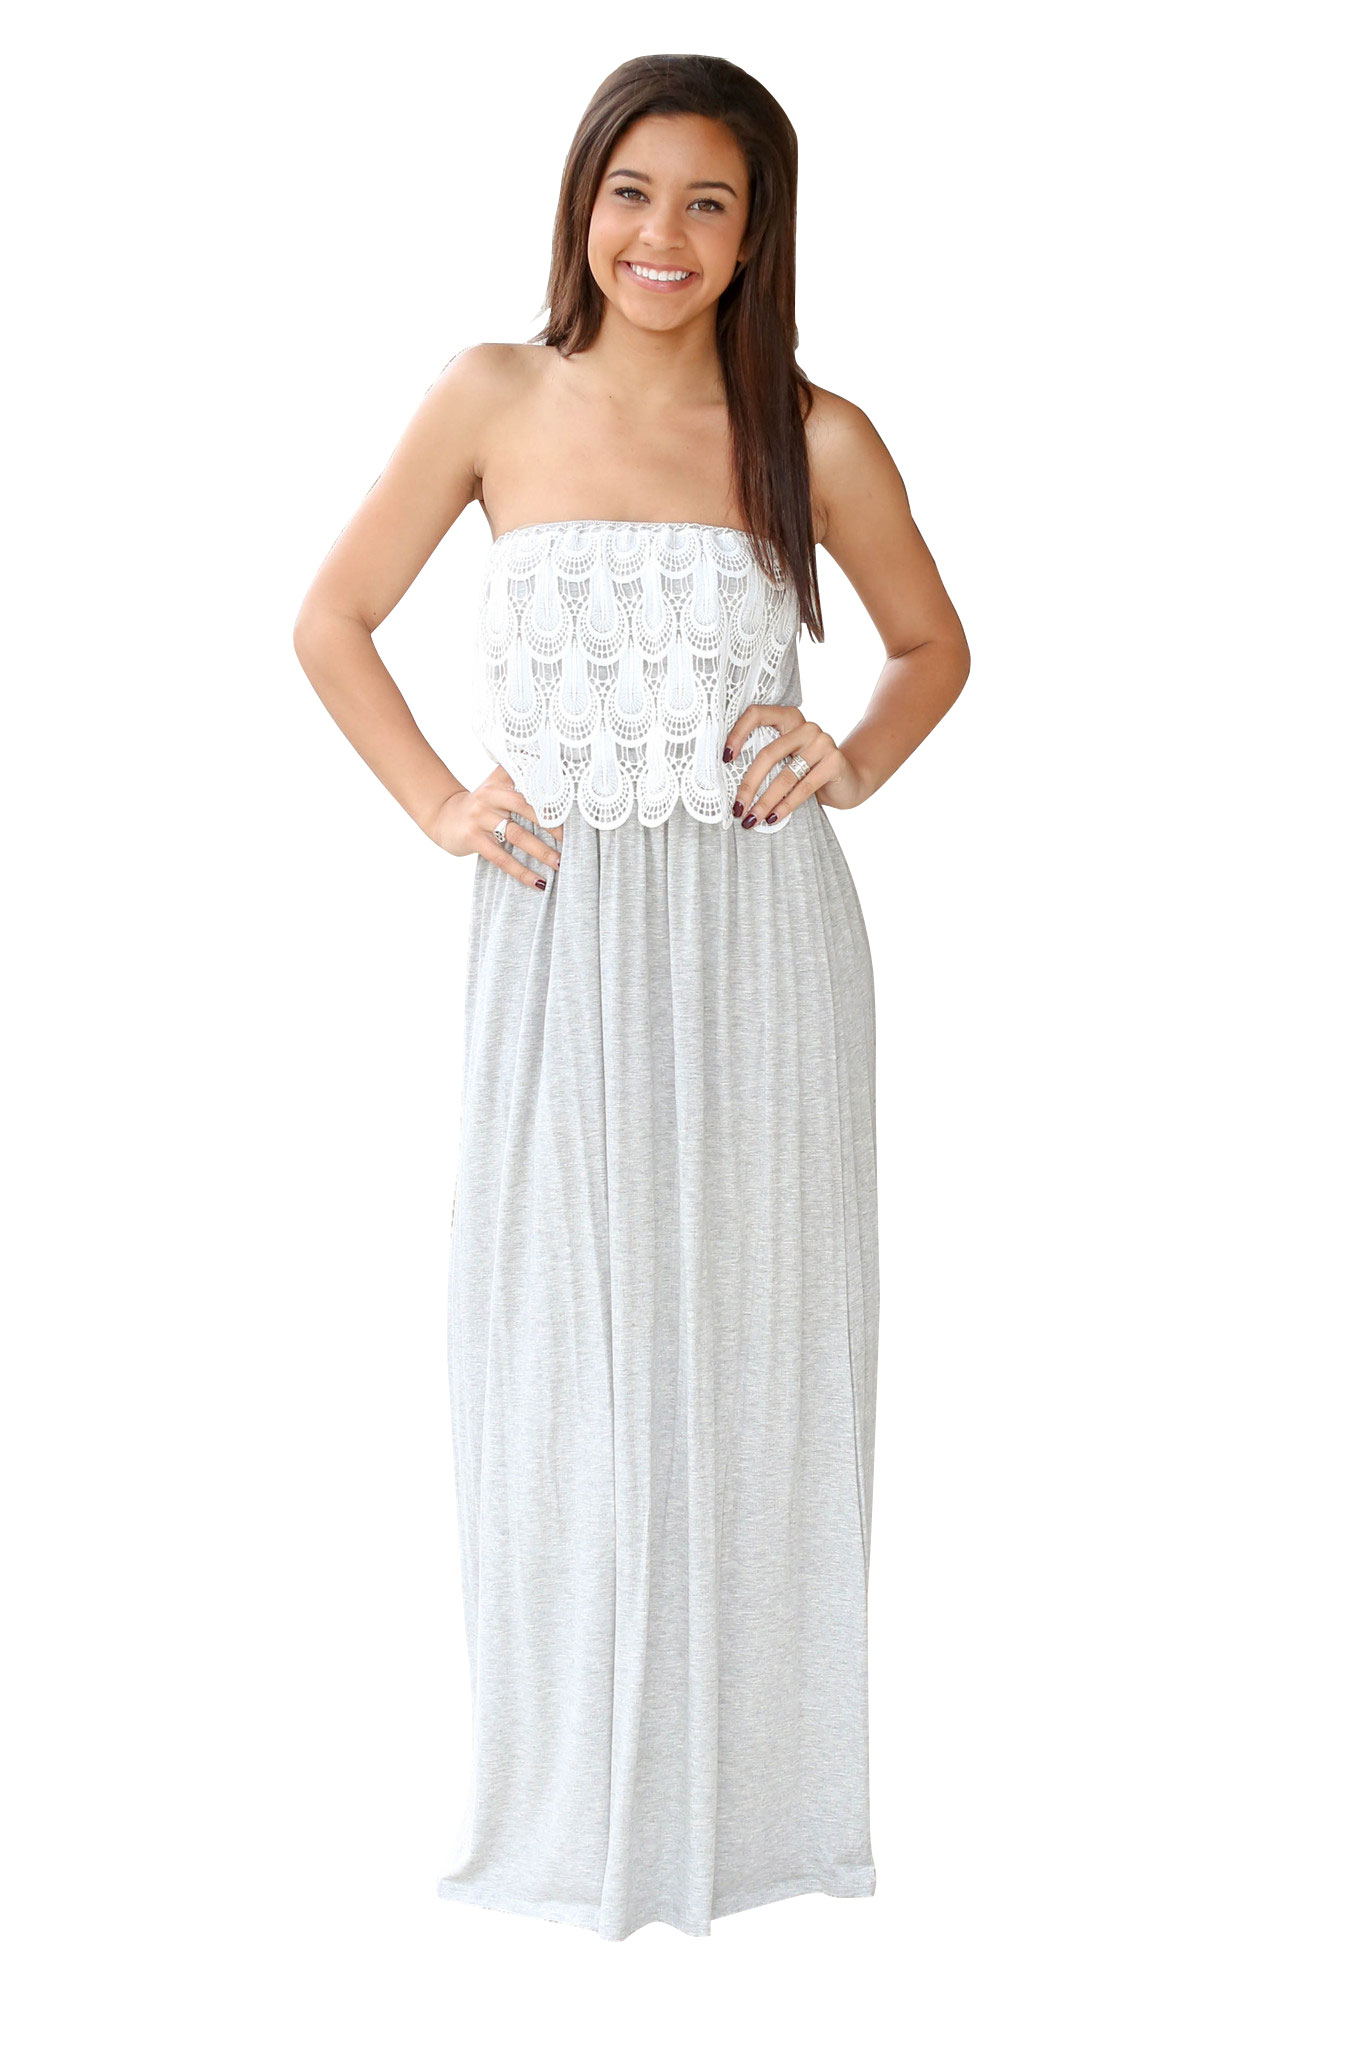 Strapless White Lace Summer Style Summer Maxi Dress Long ...